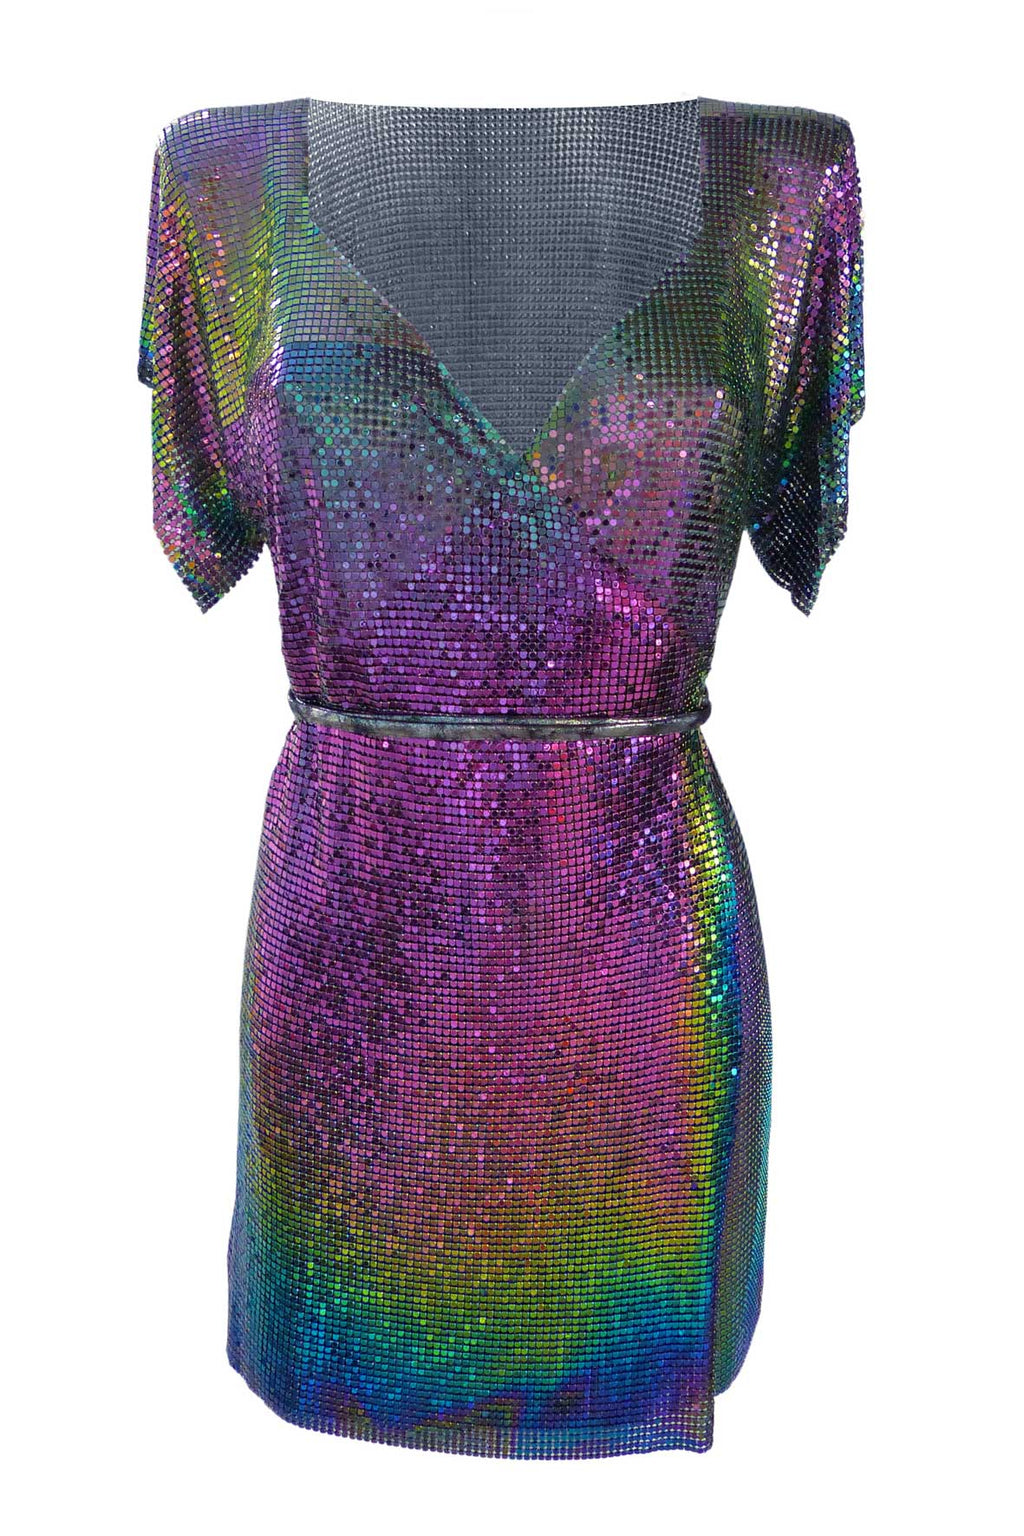 Iridescent Chain Wrap Dress